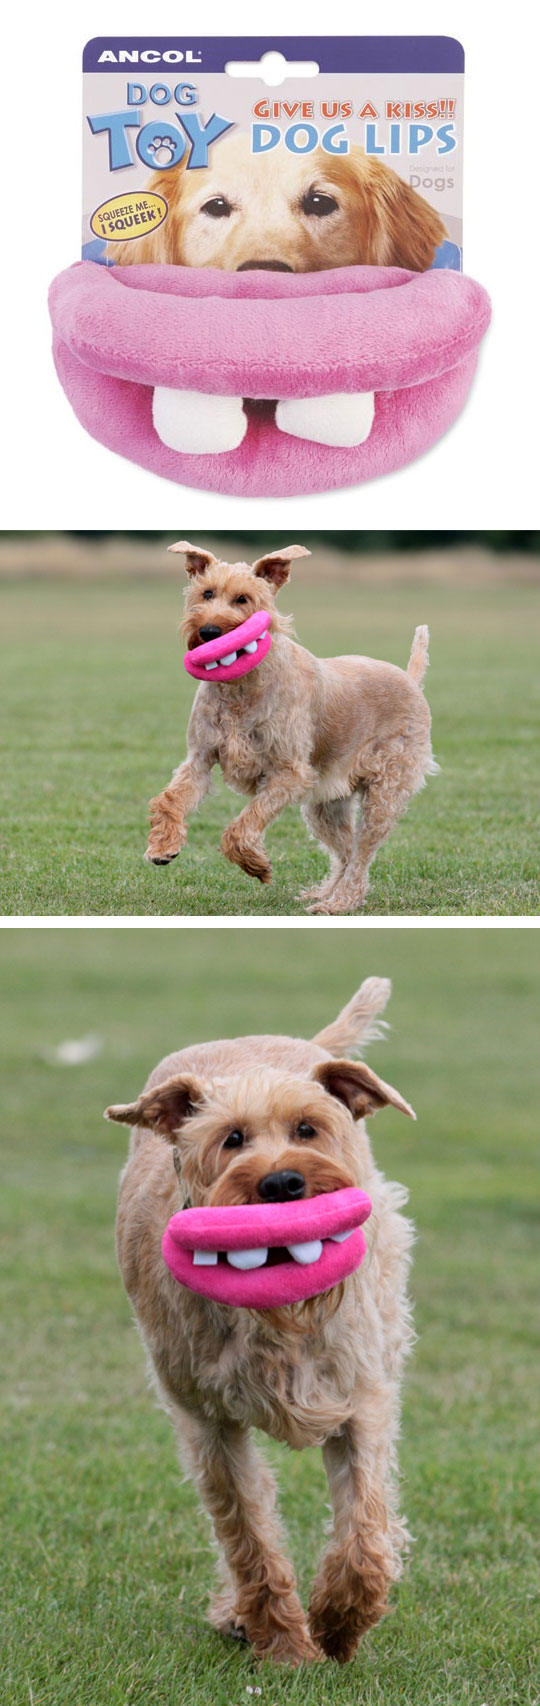 funny-dog-toy-mouth-lips